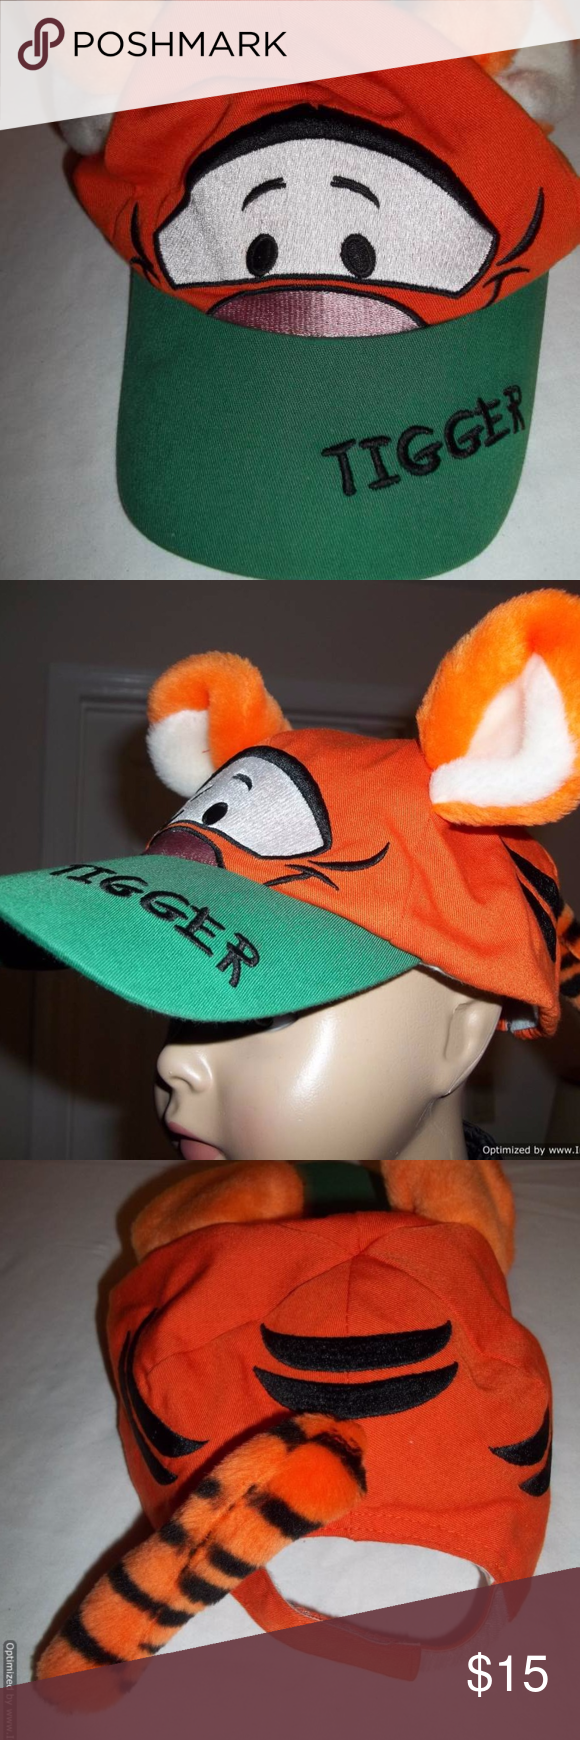 473ddb1998e Winnie The Pooh Tigger Toddler Plush Hat-Disney Tigger from Winnie the Pooh-Plush  Hat. This hat has Tiggers  face on the front and on the green brim is ...